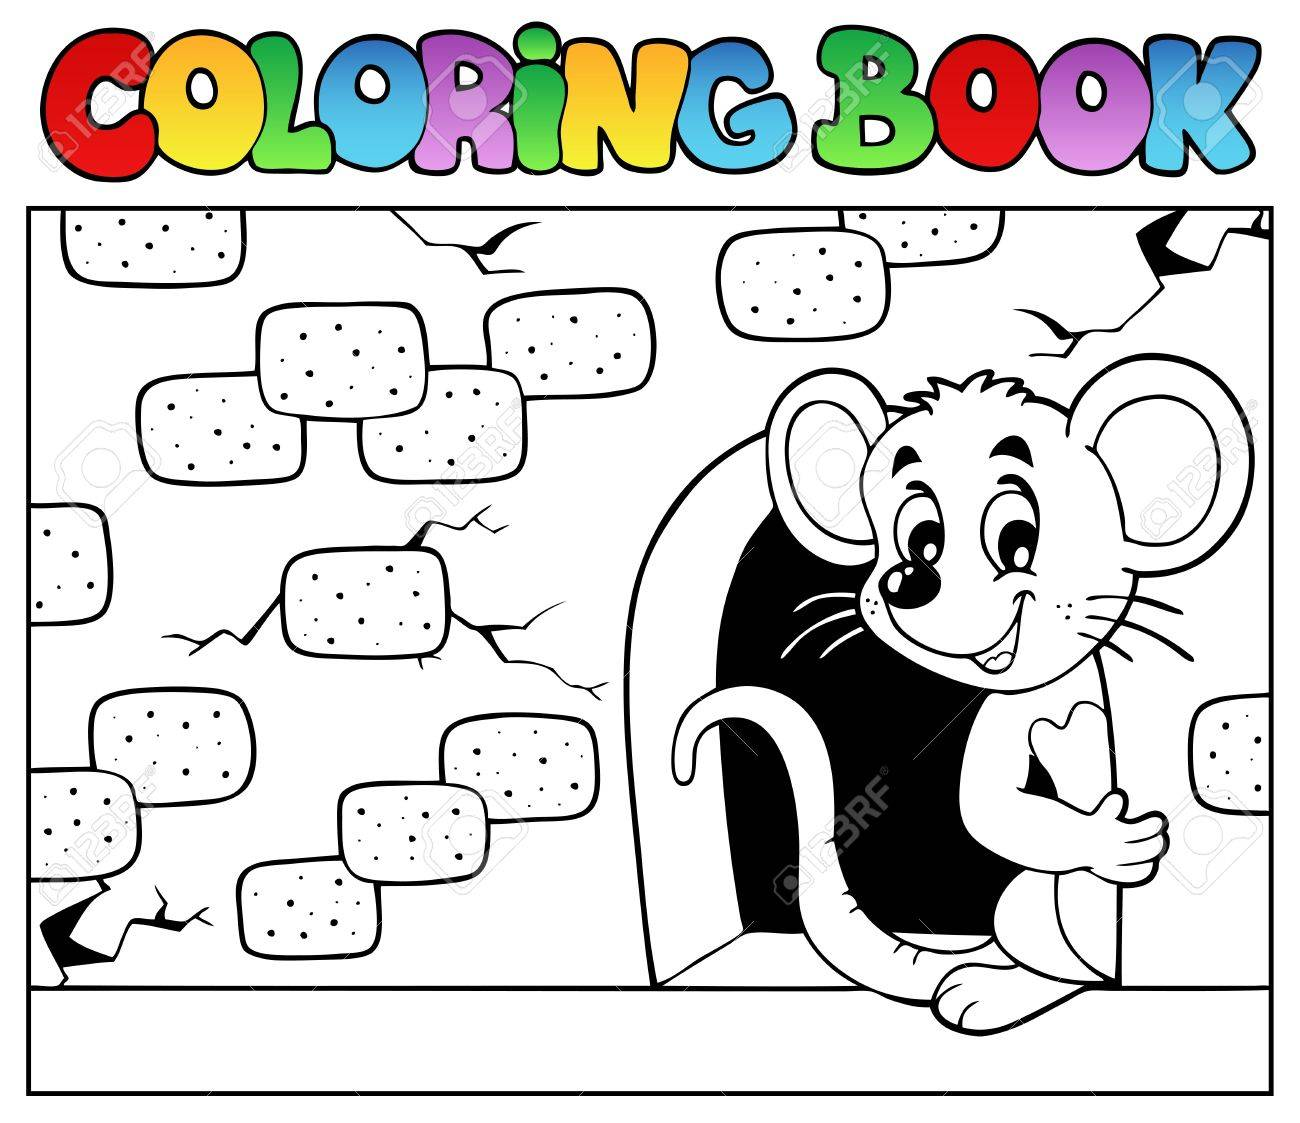 coloring book with mouse 3 vector illustration stock vector 13057330